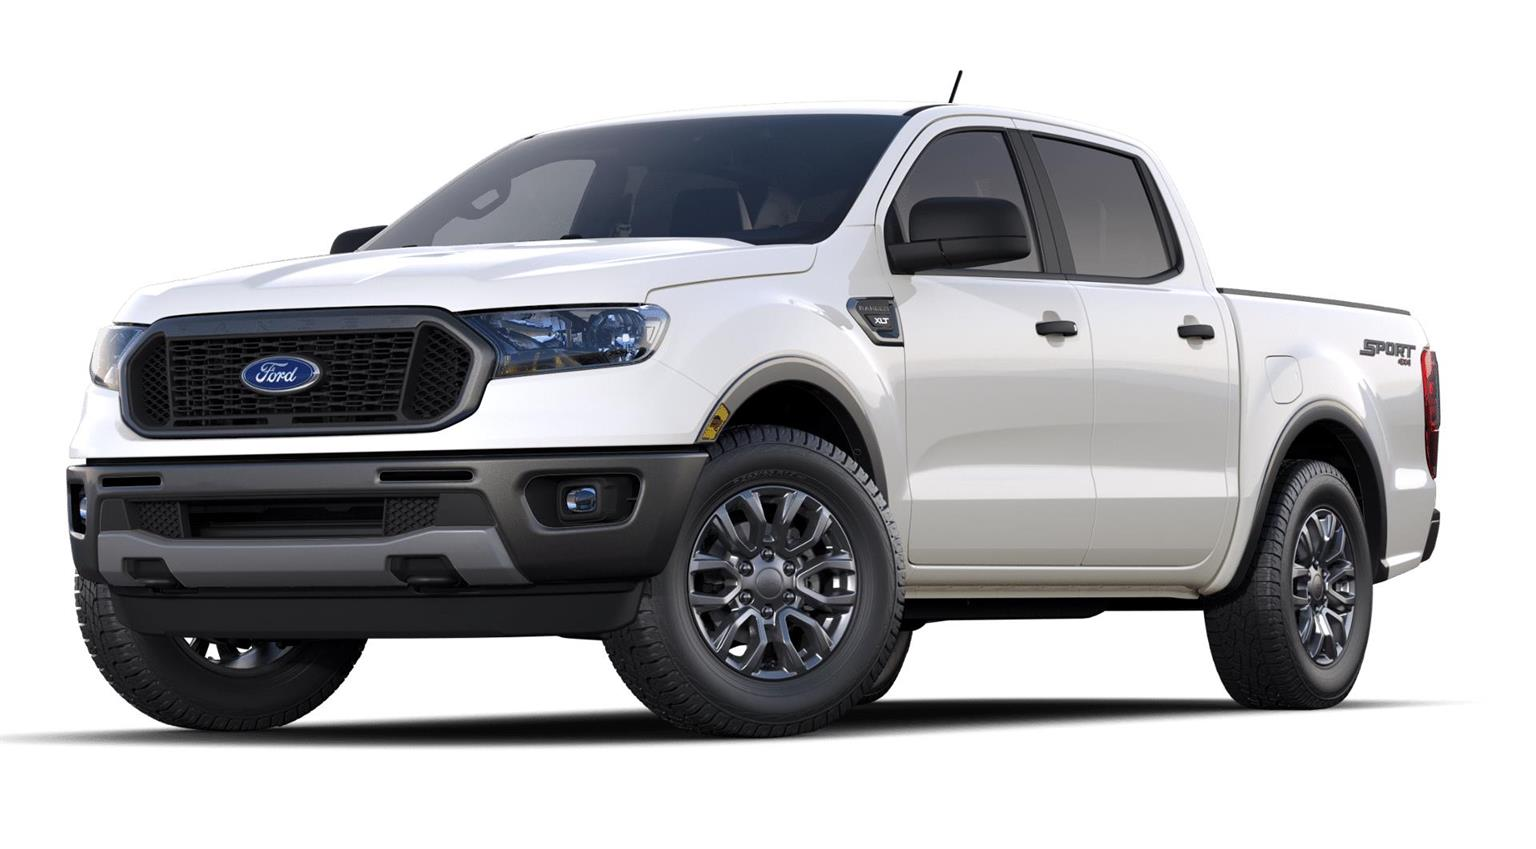 New 2020 Ford Ranger XLT A22238